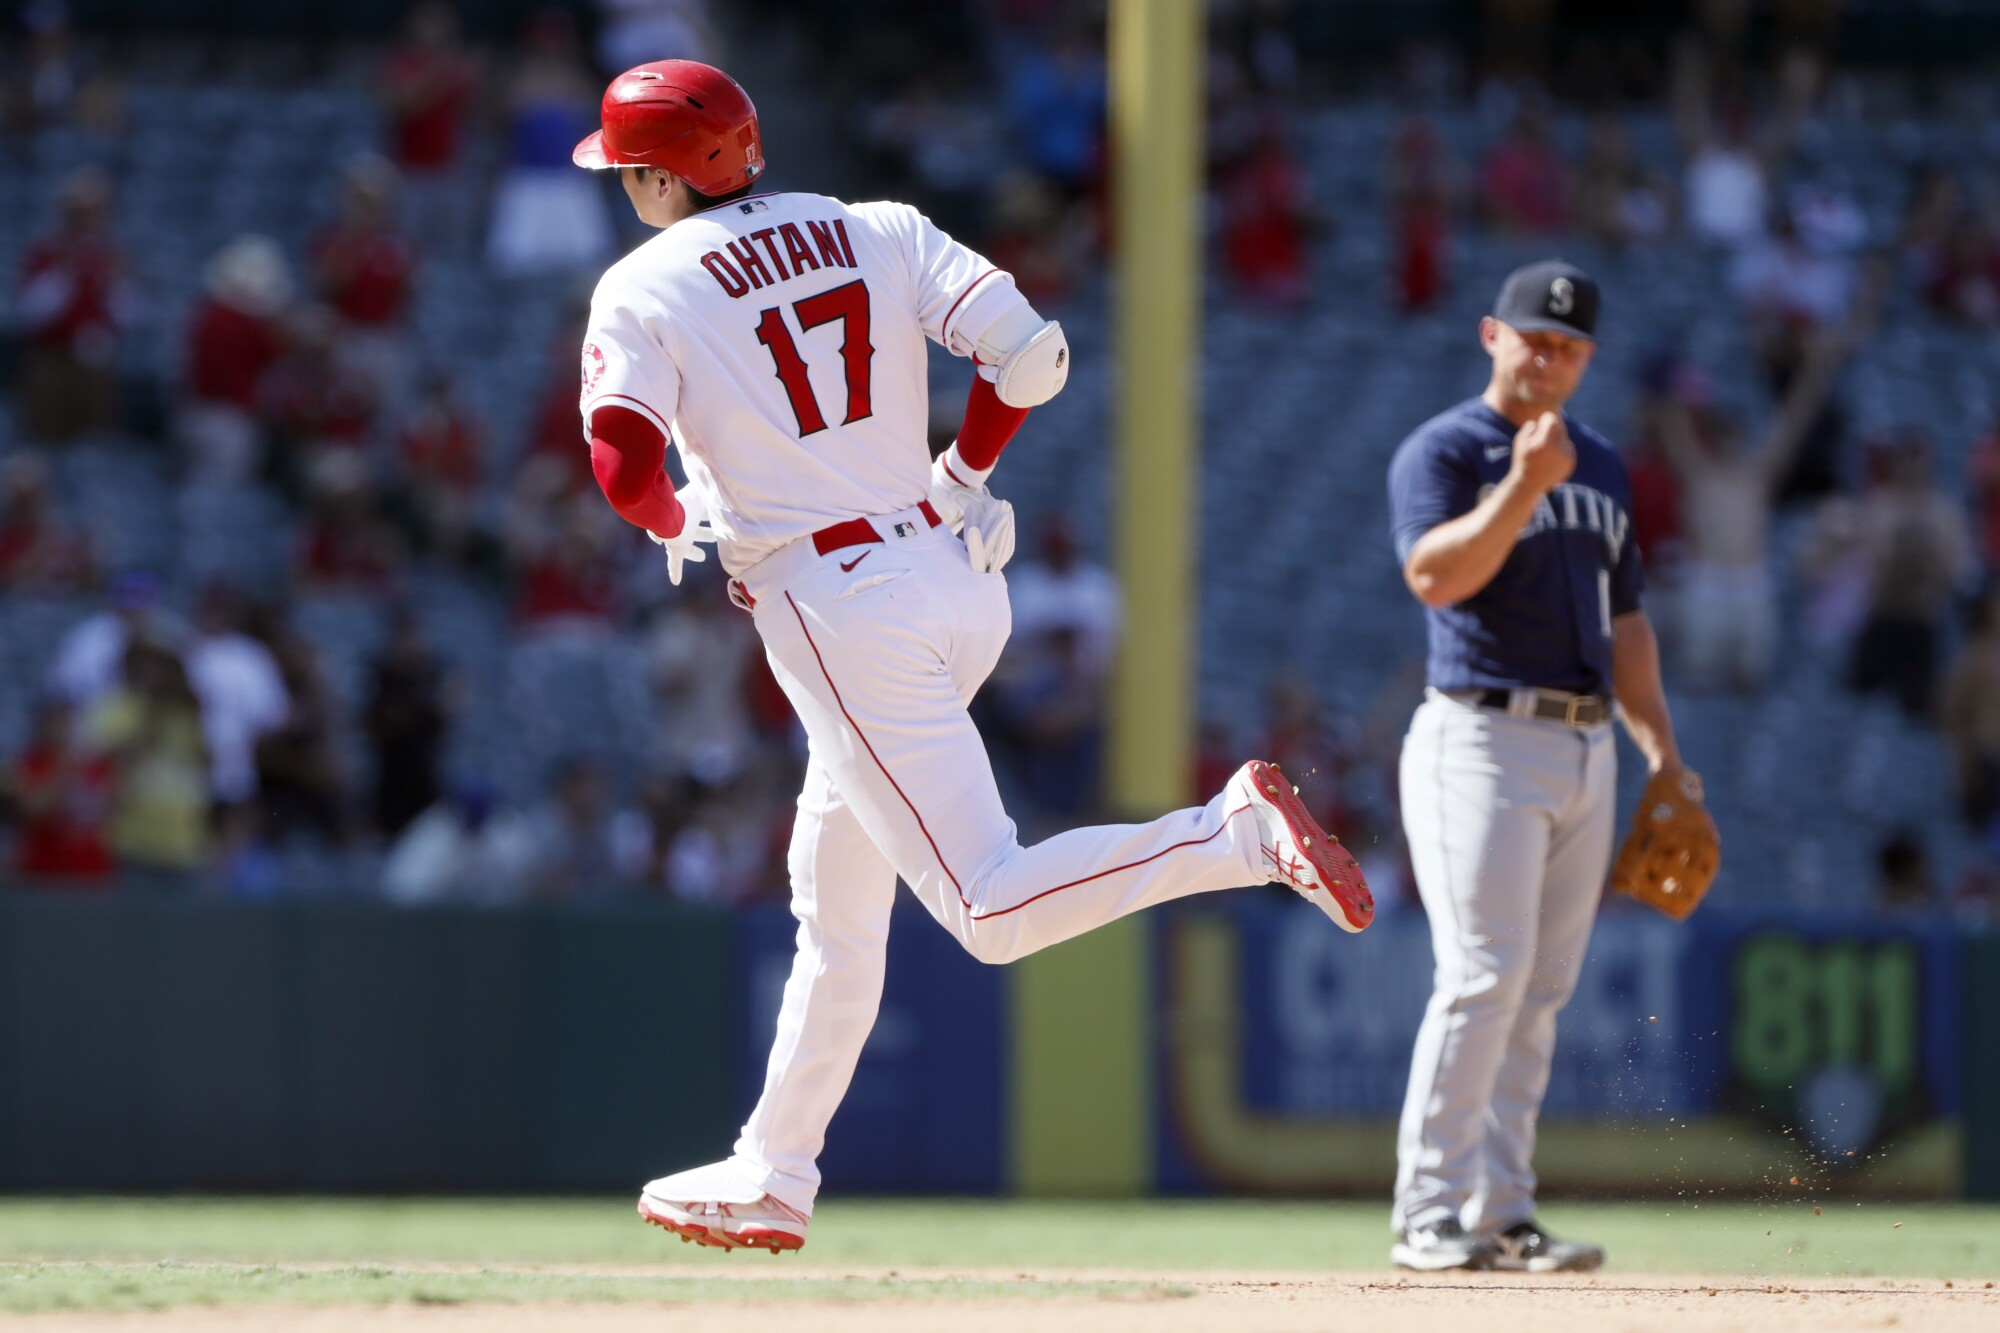 Shohei Ohtani hit his 34th home run, but the Angels lost to the Mariners on Sunday. (AP Photo/Alex Gallardo)